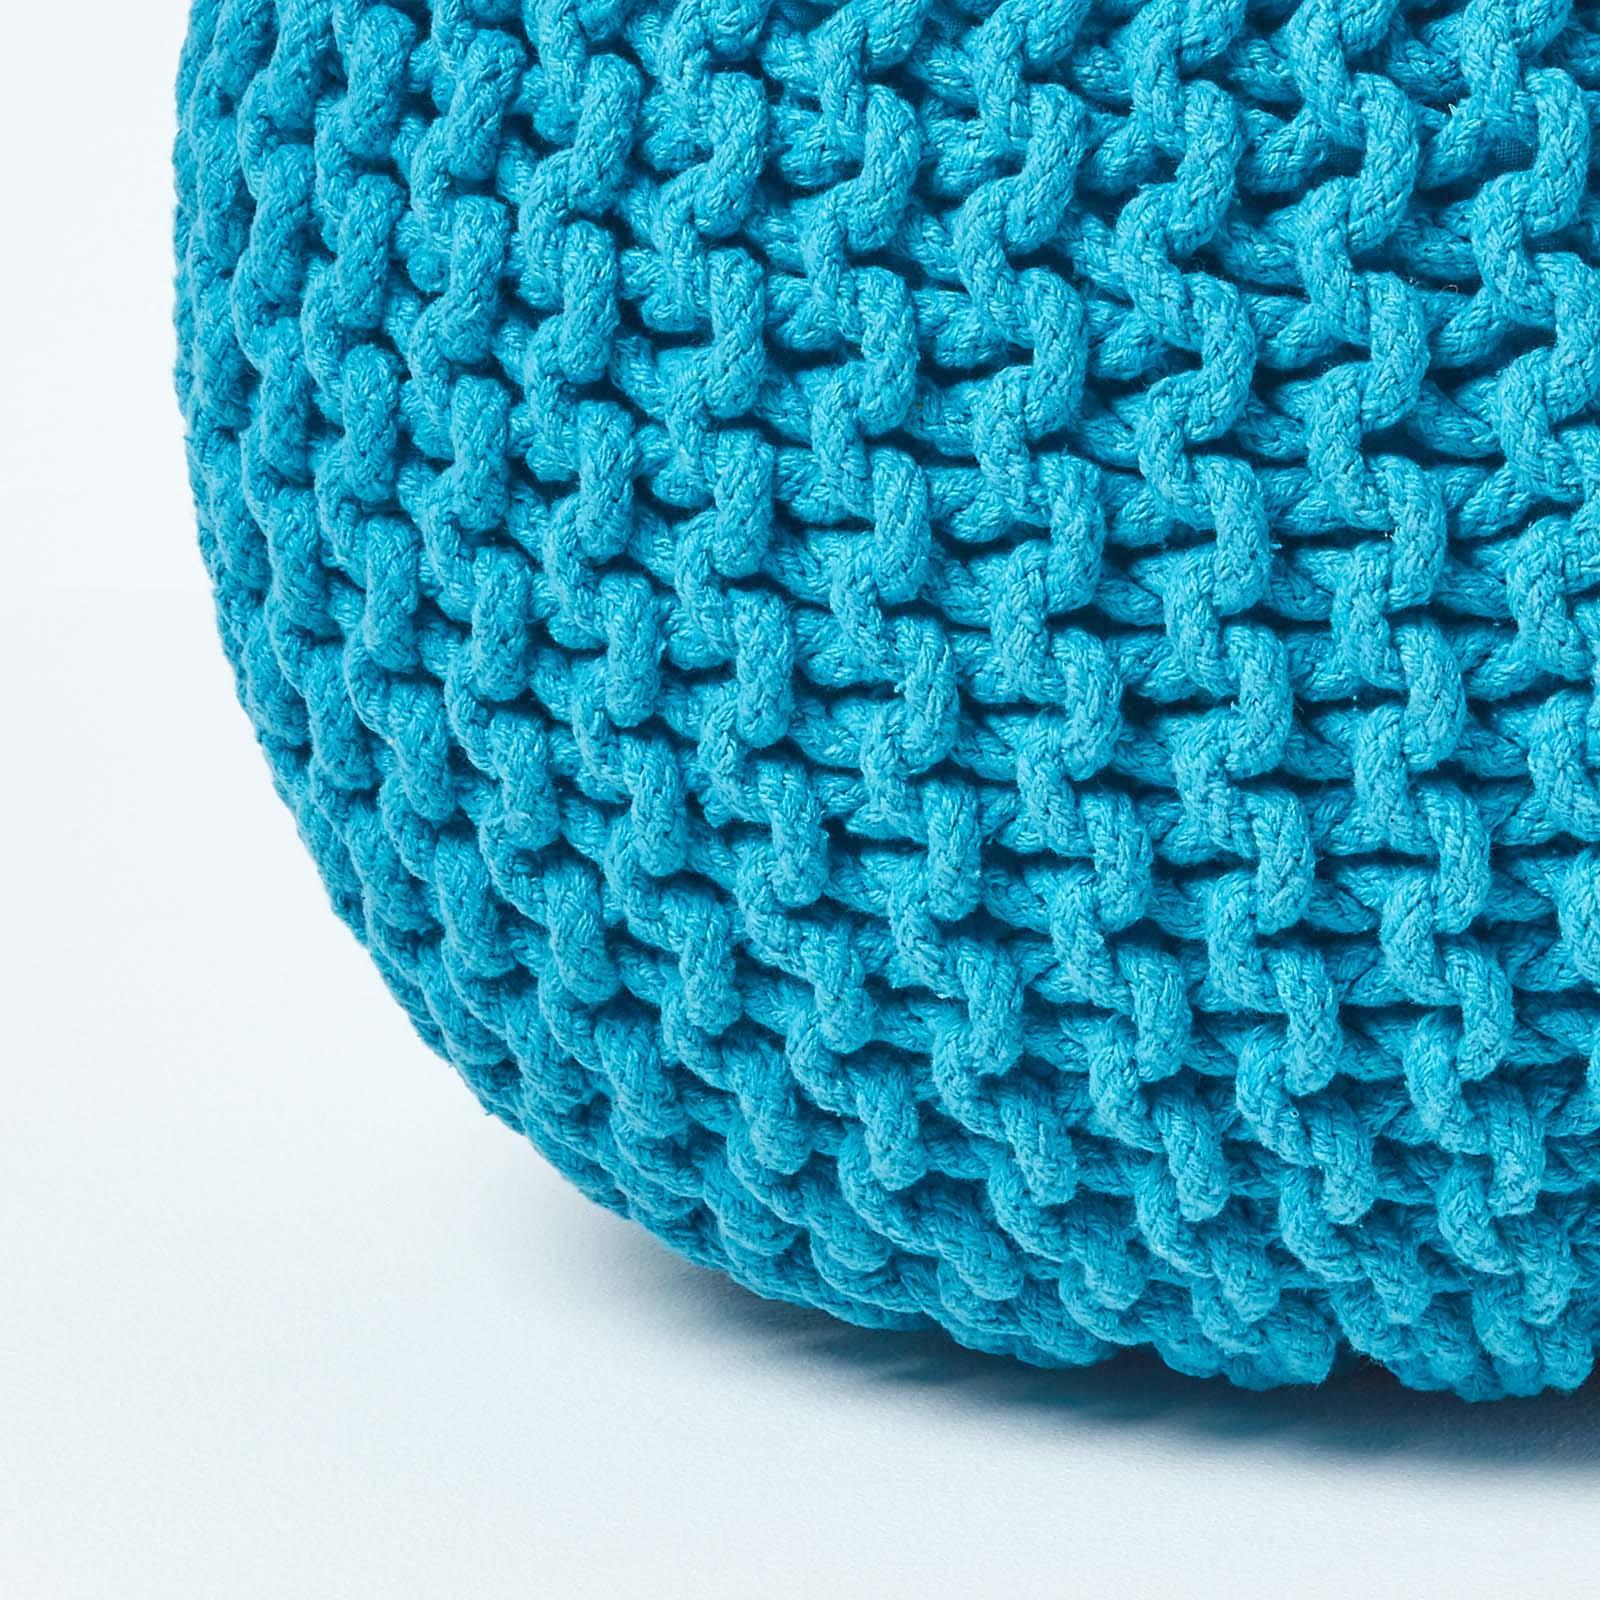 Hand-Knitted-100-Cotton-Pouffes-Round-Sphere-Or-Cube-Square-Chunky-Footstools thumbnail 190